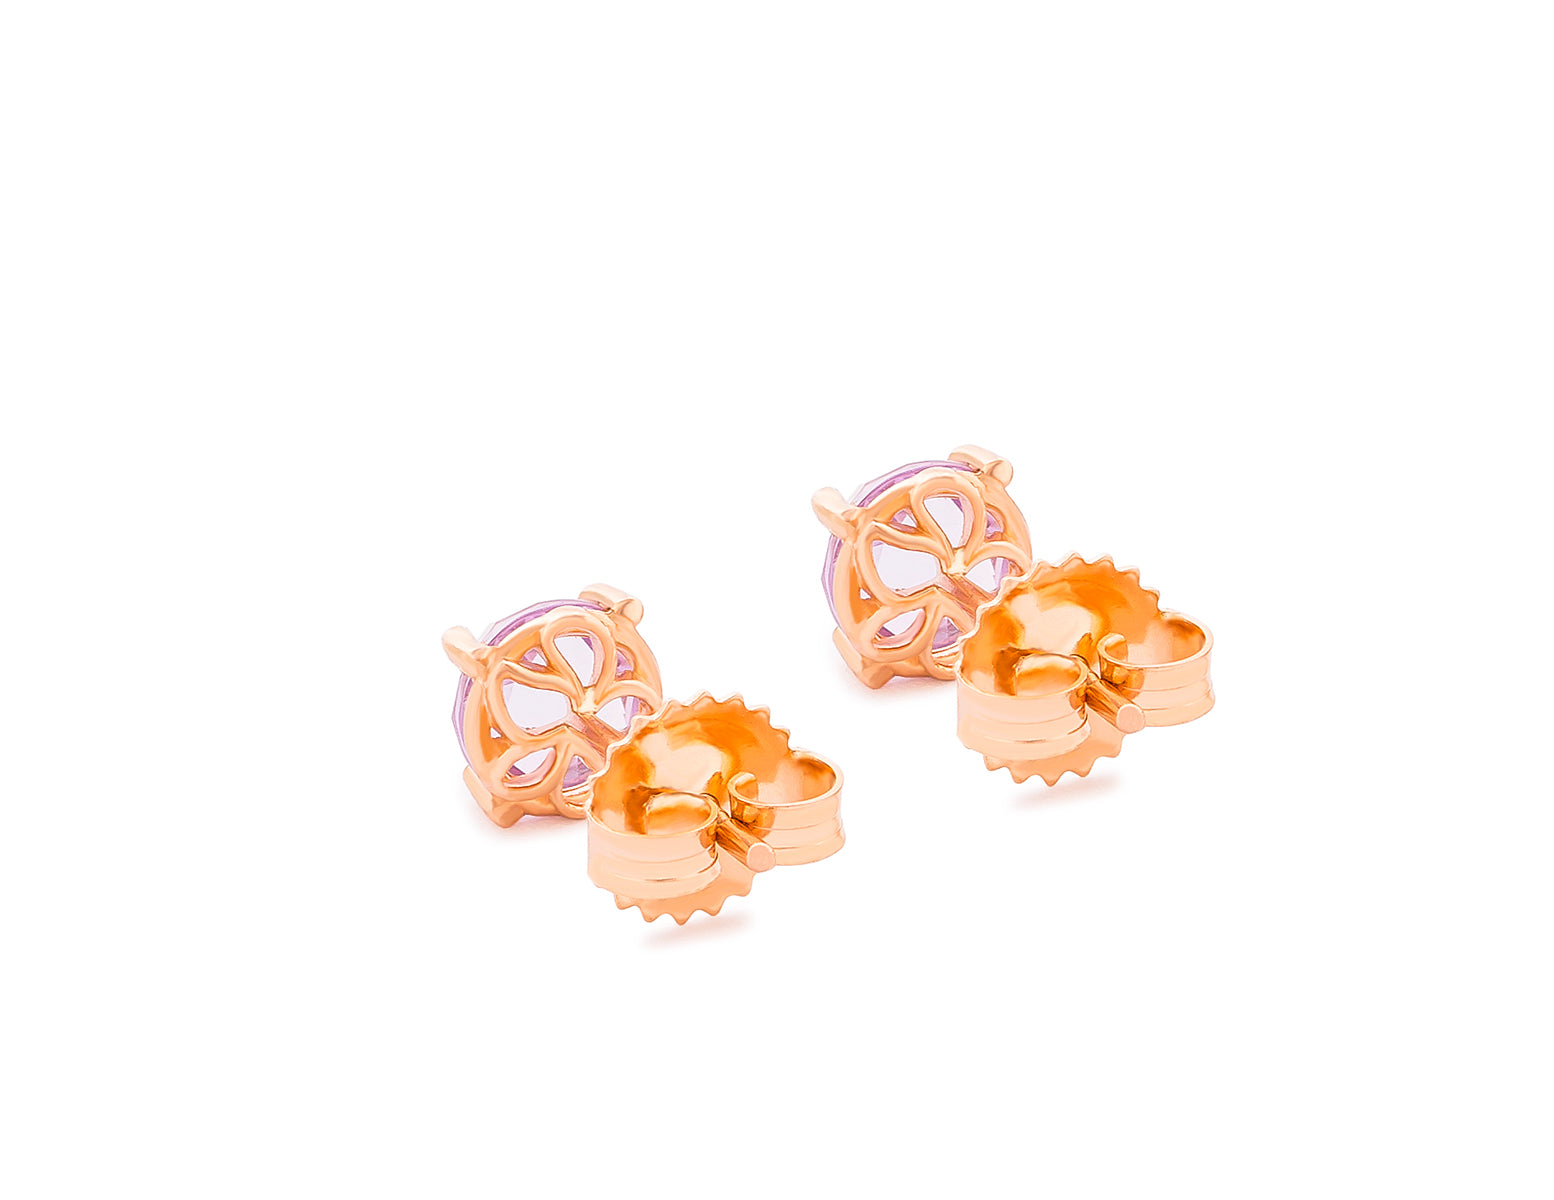 14K ROSE GOLD FLORE POST EARRINGS